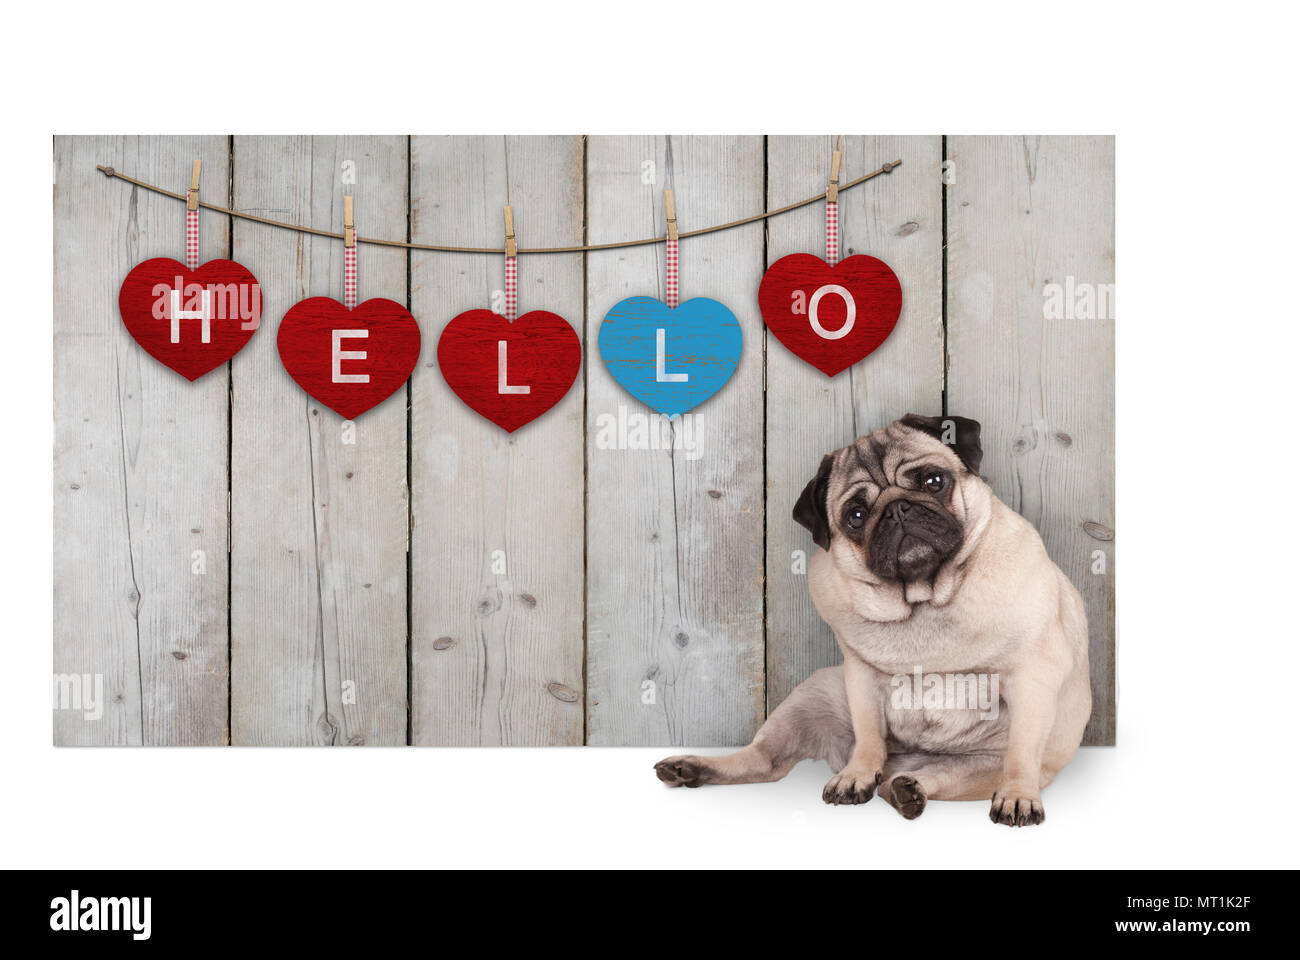 Cute pug puppy dog sitting down next to wooden fence of reclaimed barn wood with red and blue hearts with text hello, isolated on white backgroundStock Photo